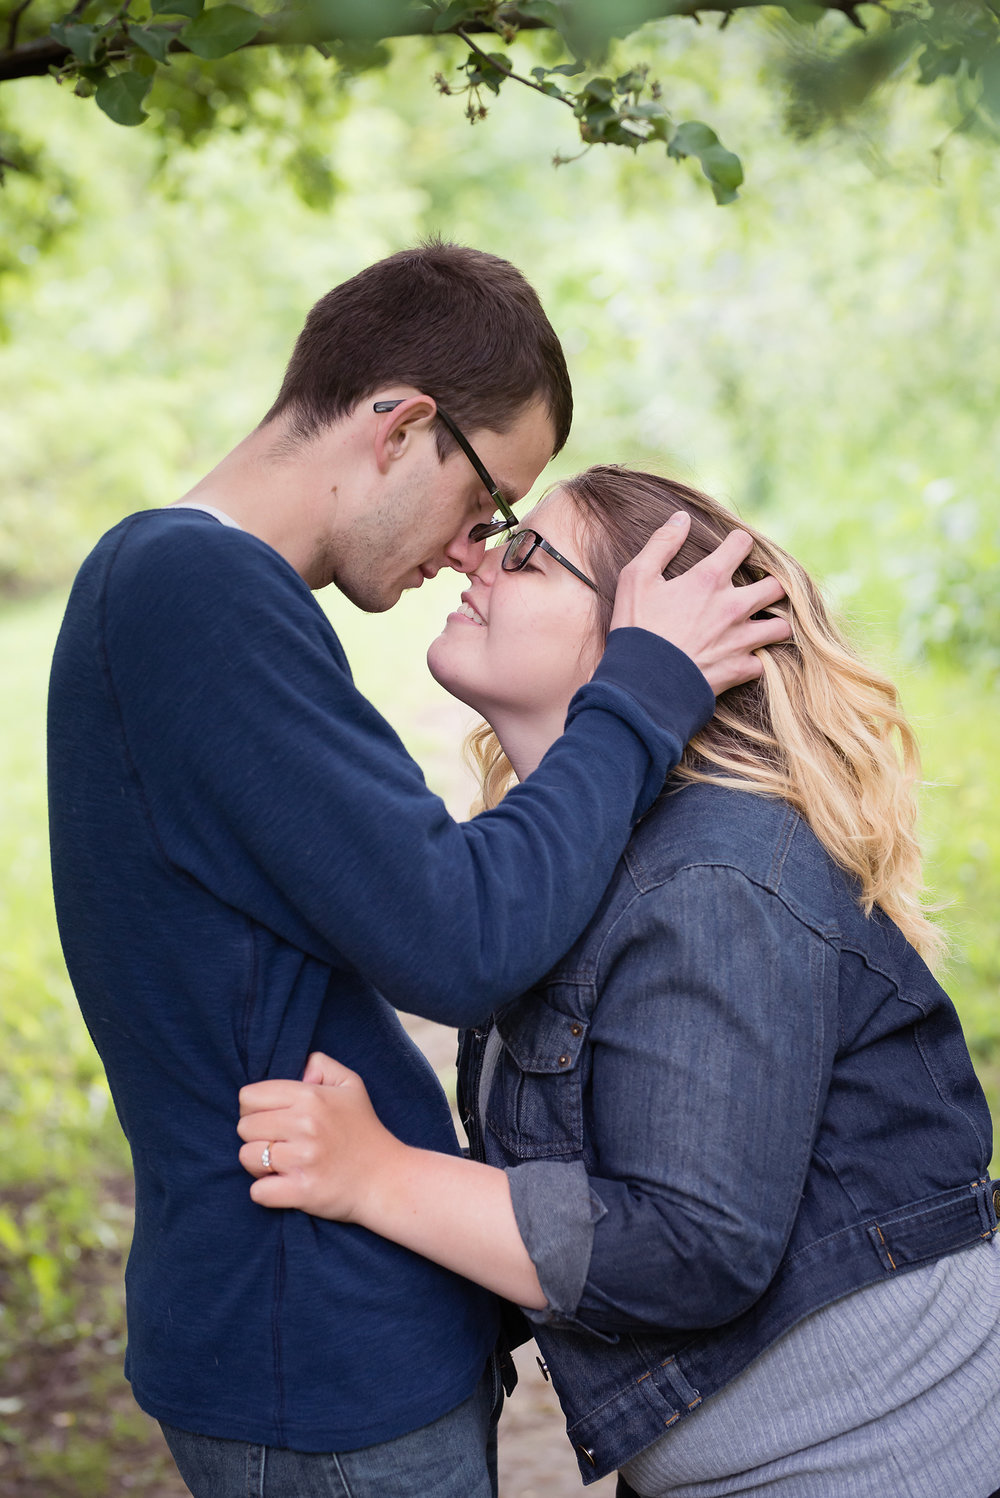 Couples280NaomiLuciennePhotography062018-2-Edit.jpg